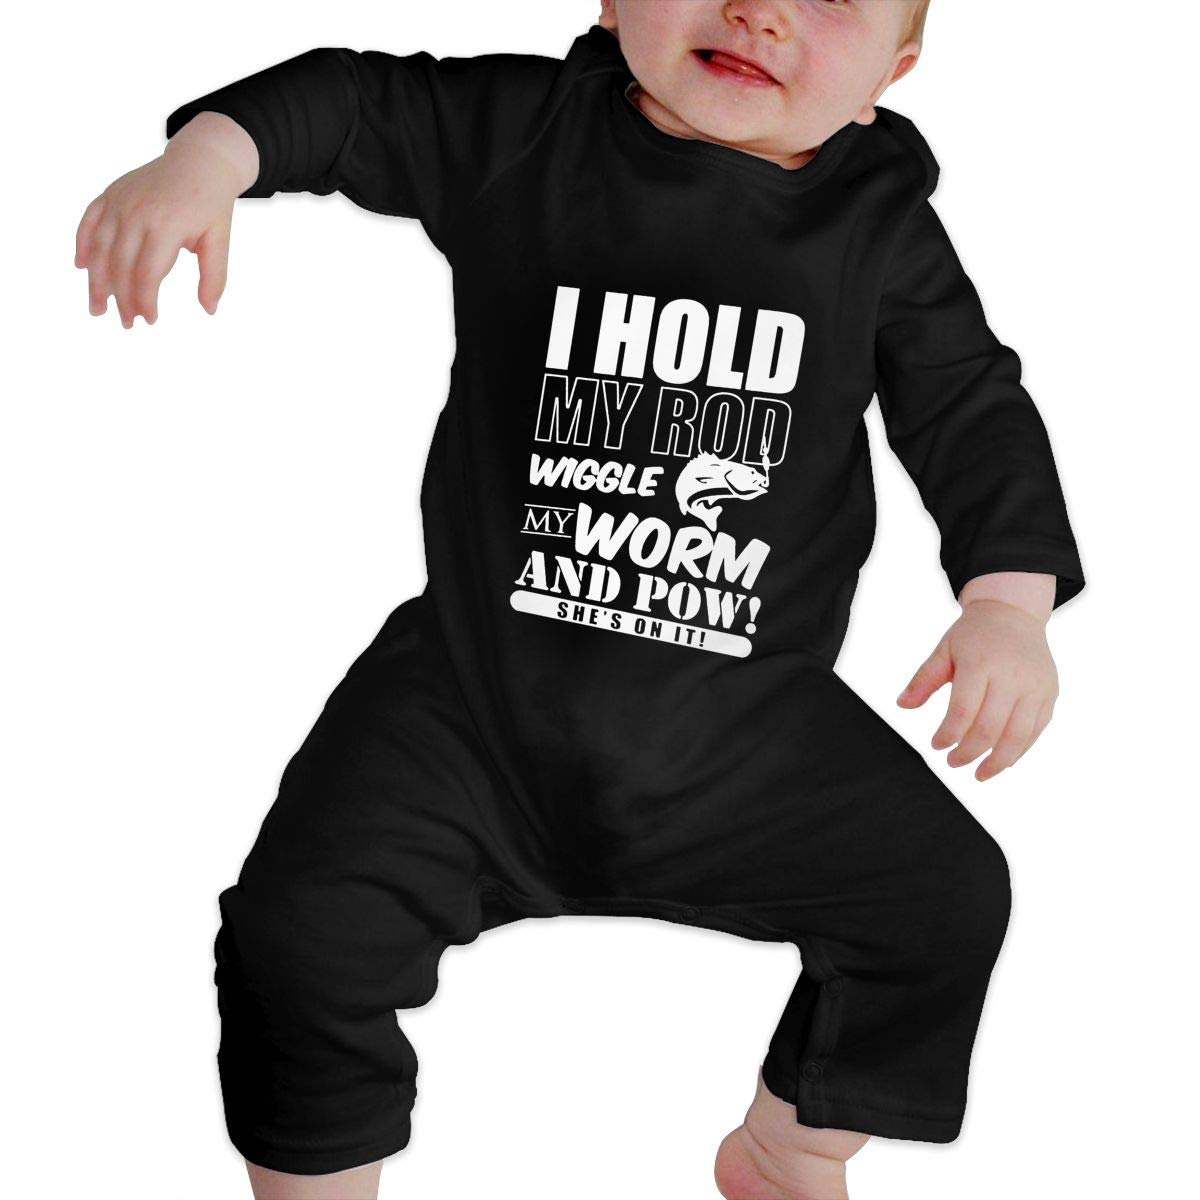 KAYERDELLE I Hold My Rod Wiggle My Worm Long-Sleeve Unisex Baby Playsuit for 6-24 Months Toddler